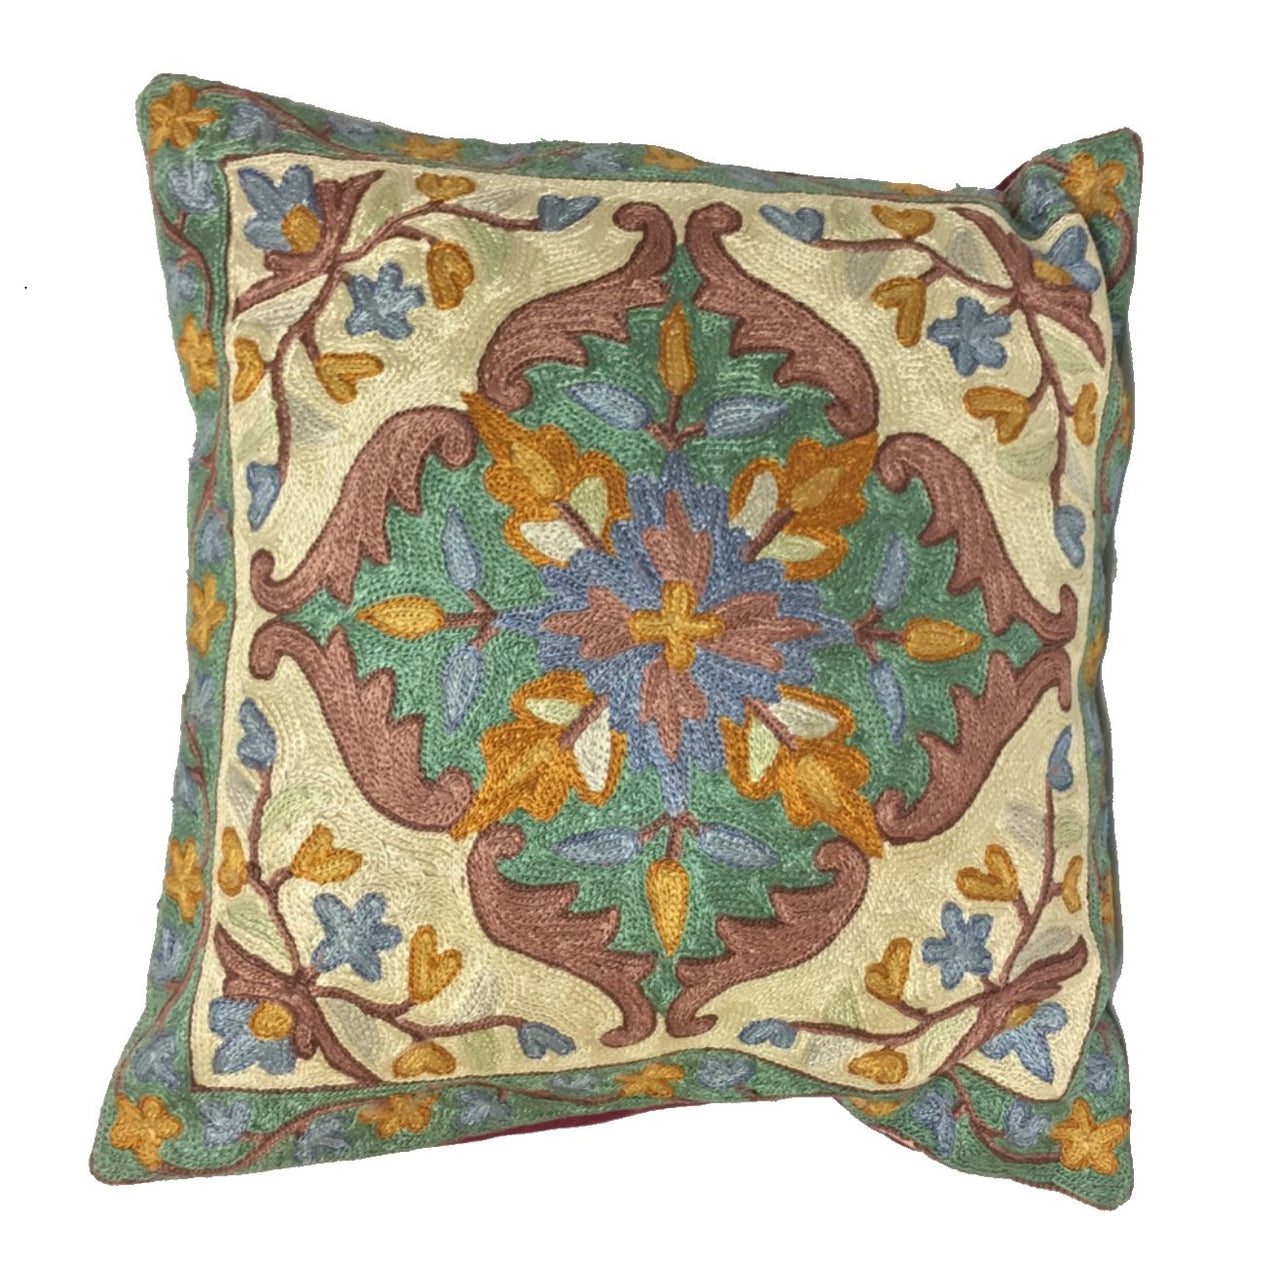 Silk Thread Embroidered Cushion Covers - Pattern F